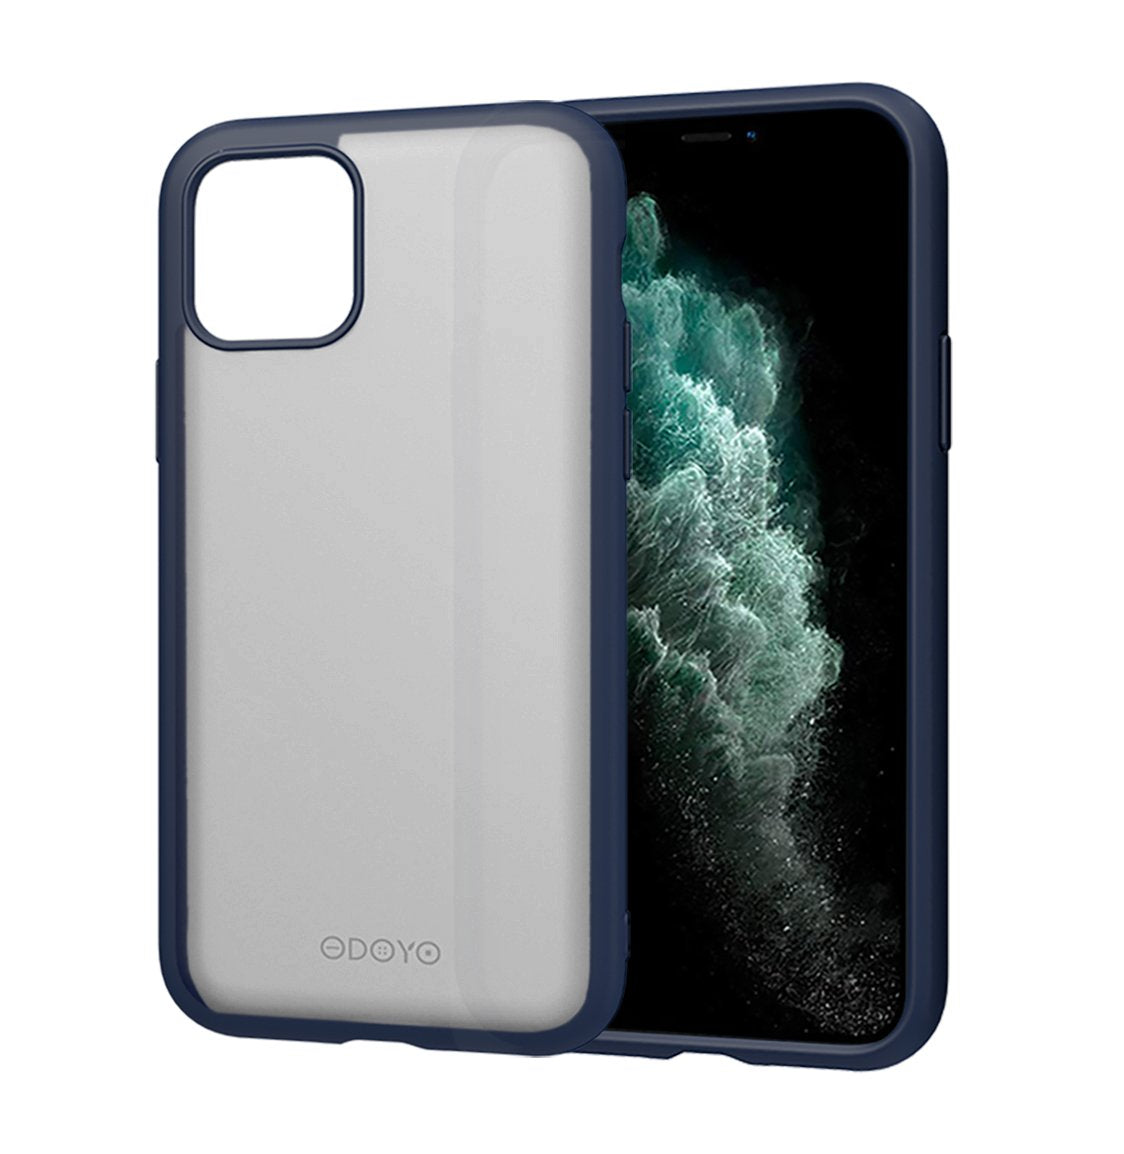 ODOYO iPhone 11 Translucent Matte Case with Soft Edges - Shockproof, Slim Fit, Lightweight with Soft Silicone Bumper and Anti-Scratch Hard Protective Back for iPhone 11 (2019) 6.1 Inch (Blue)